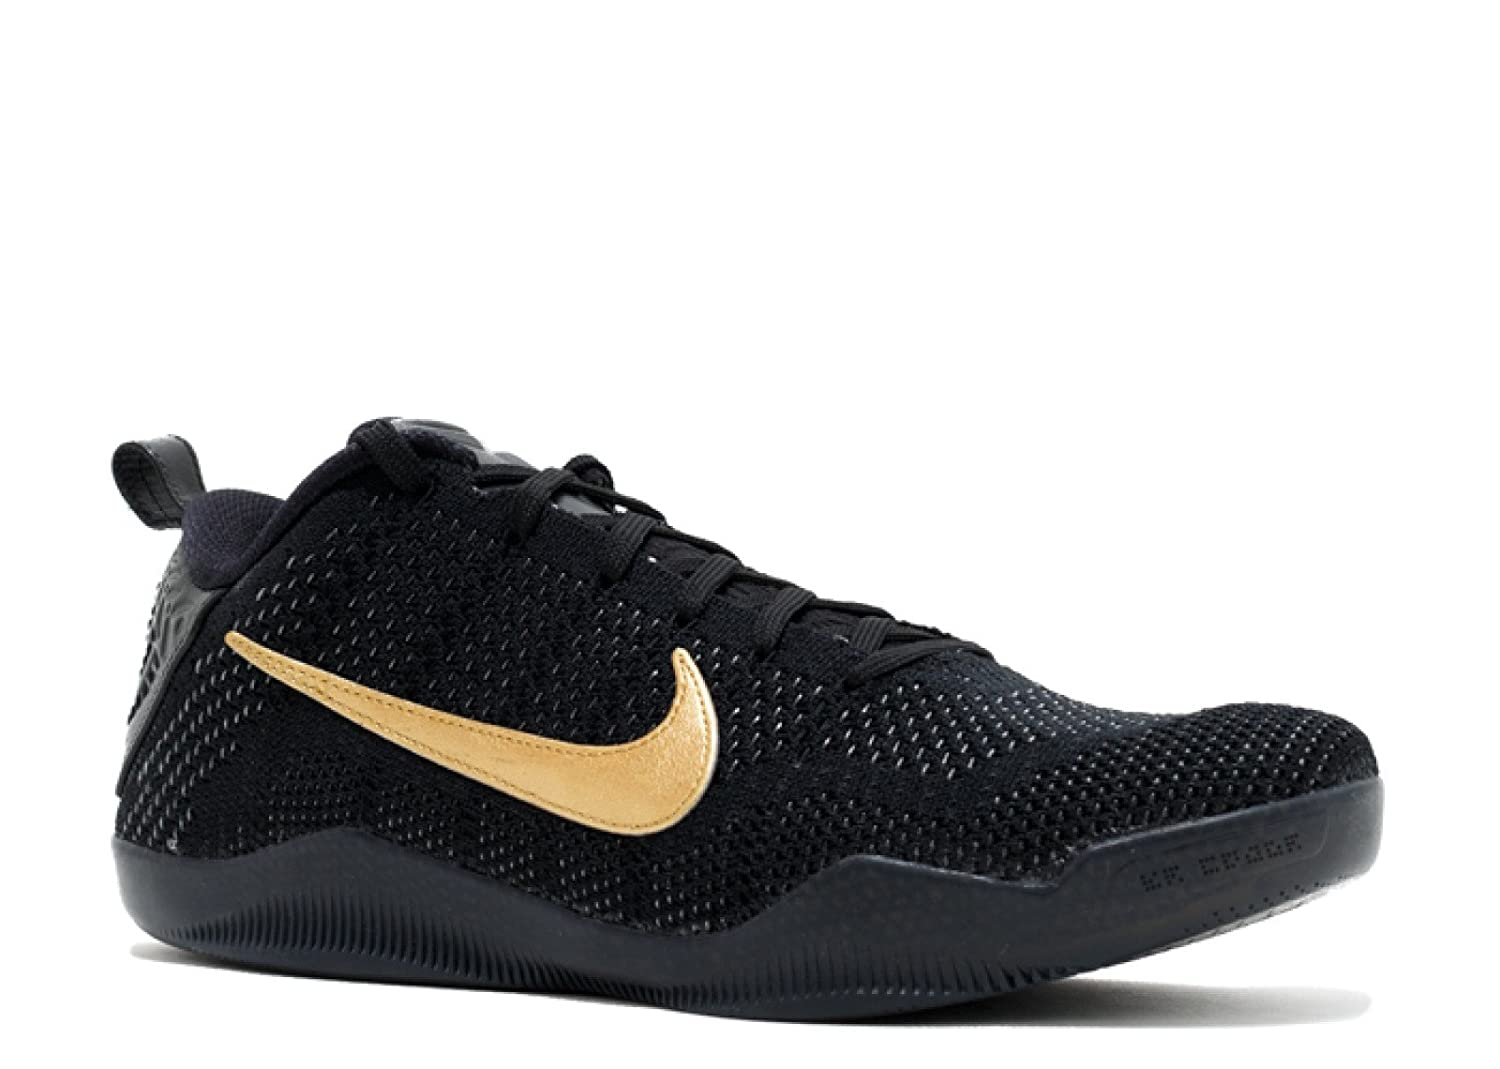 brand new fcbd8 4007e ... low cost amazon nike kobe 11 ftb black black metallic gold 869459  001fade to black black